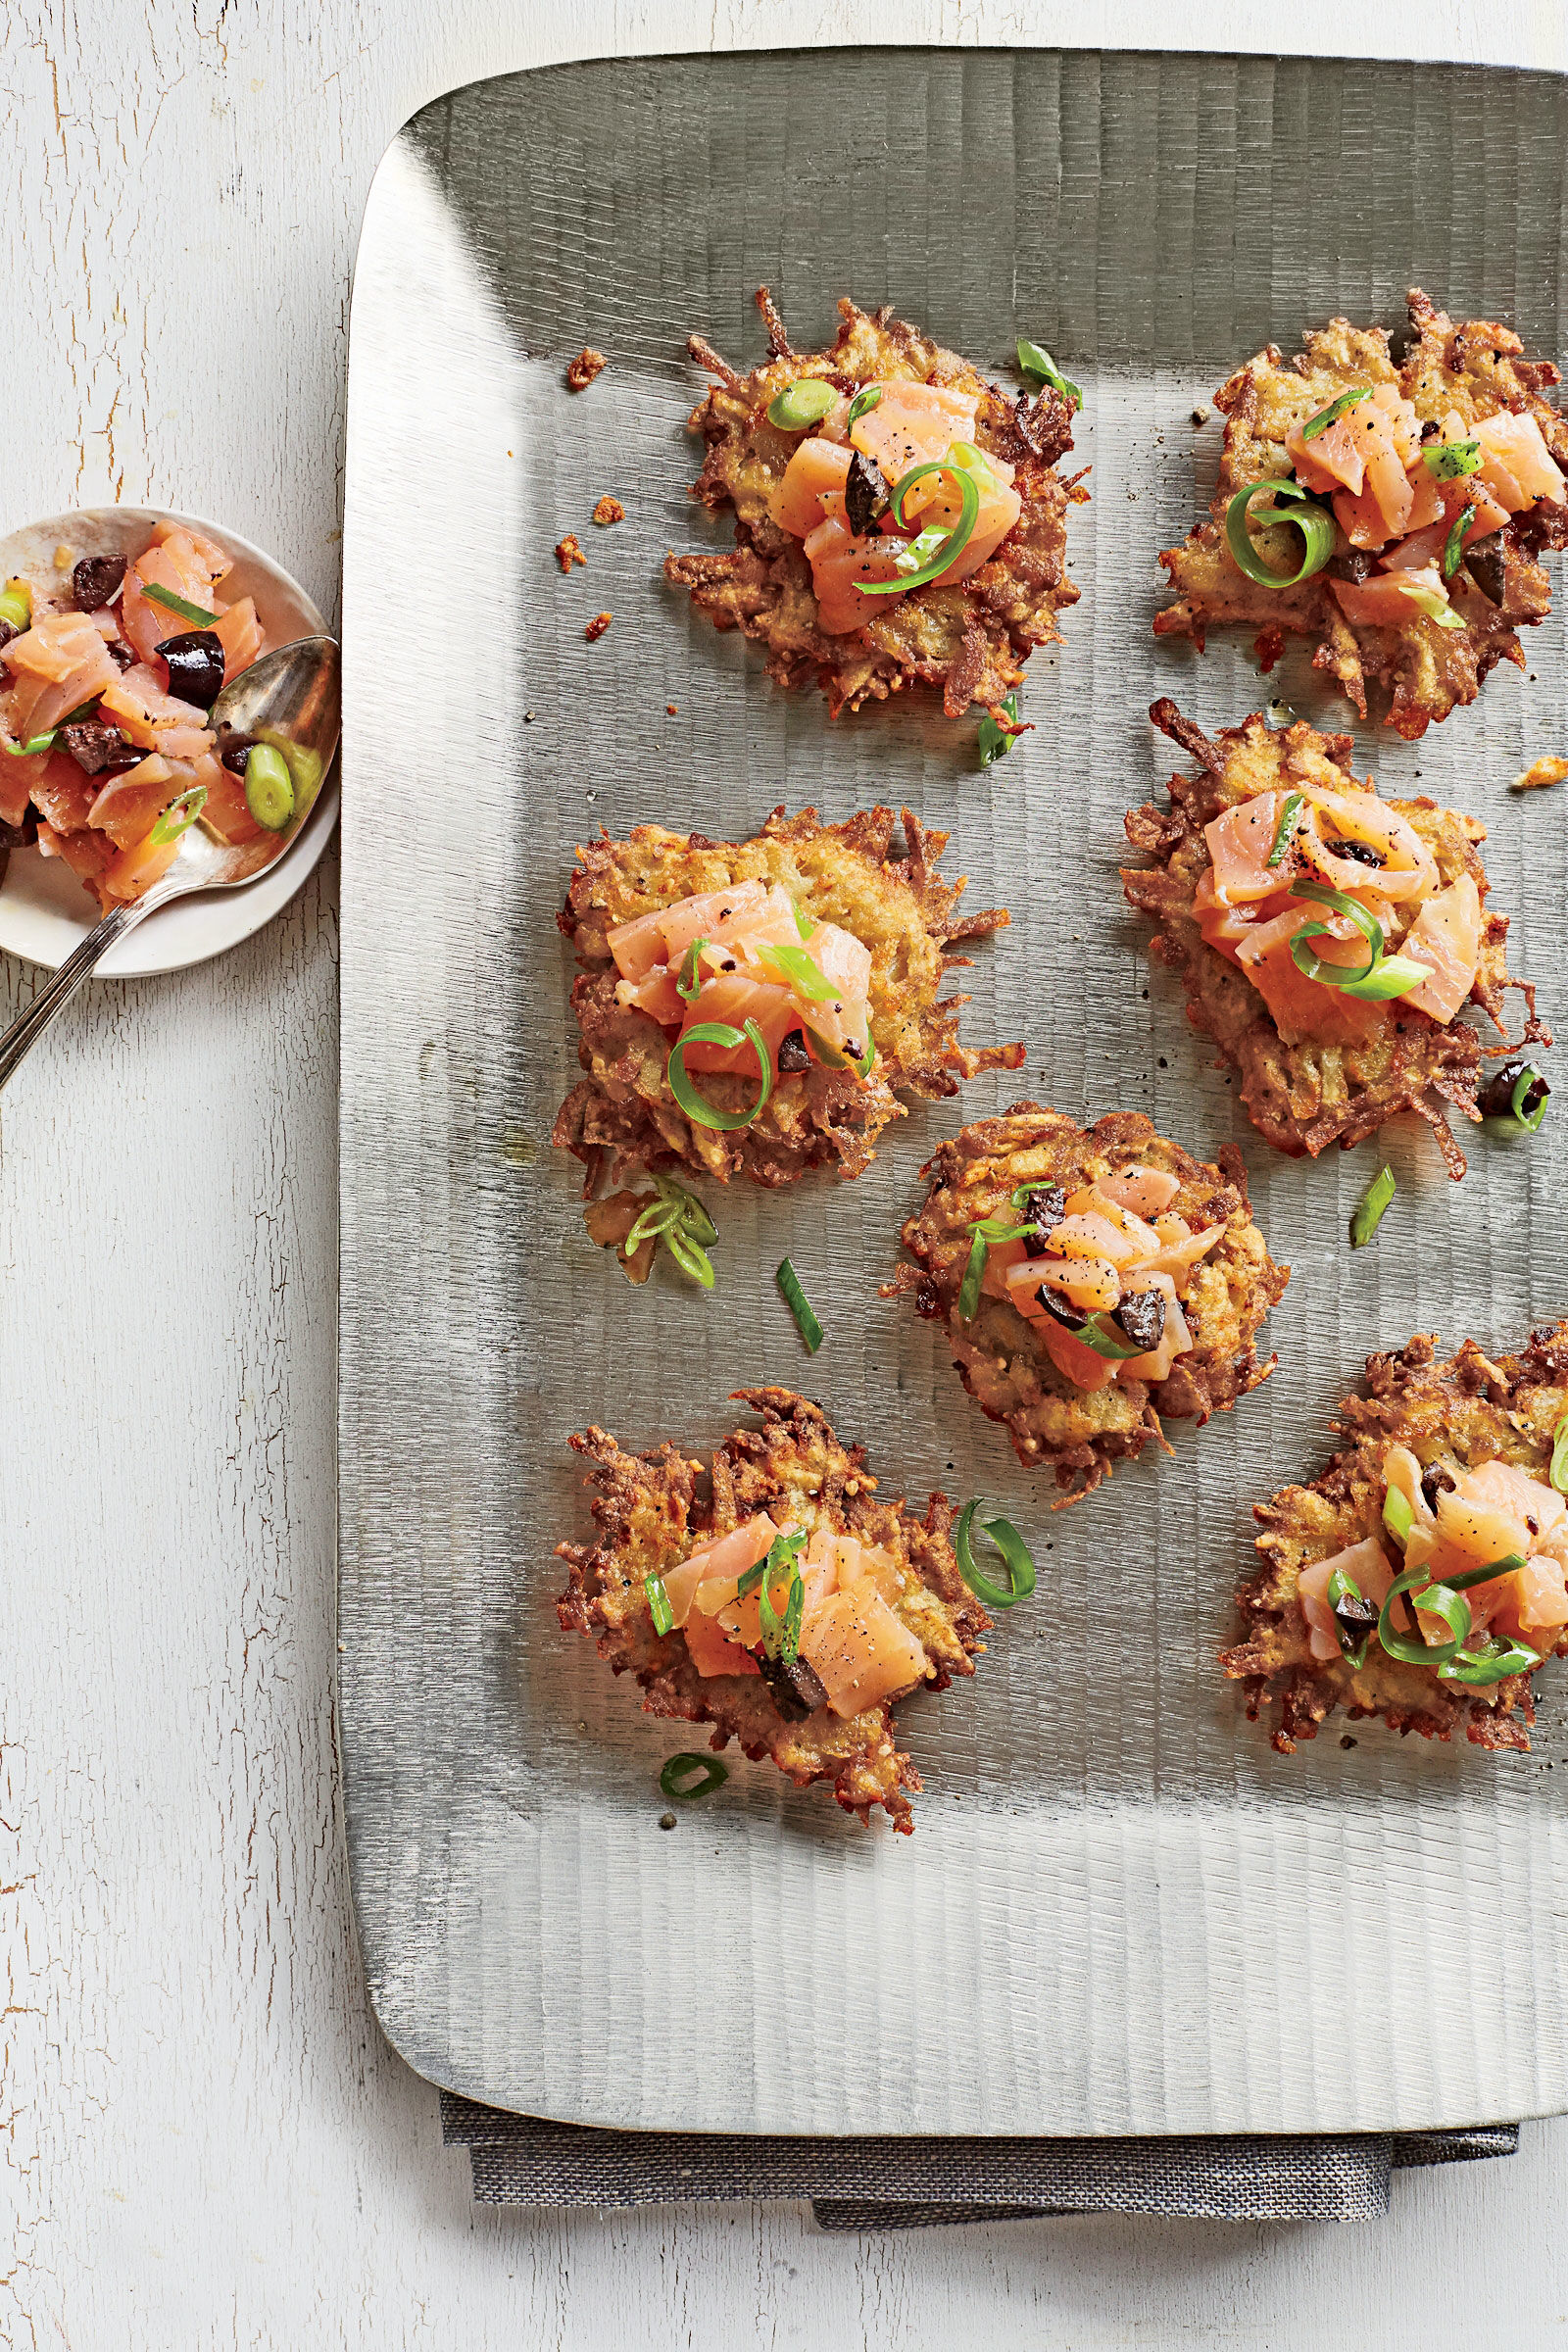 7 Tips for the Best Latkes Ever